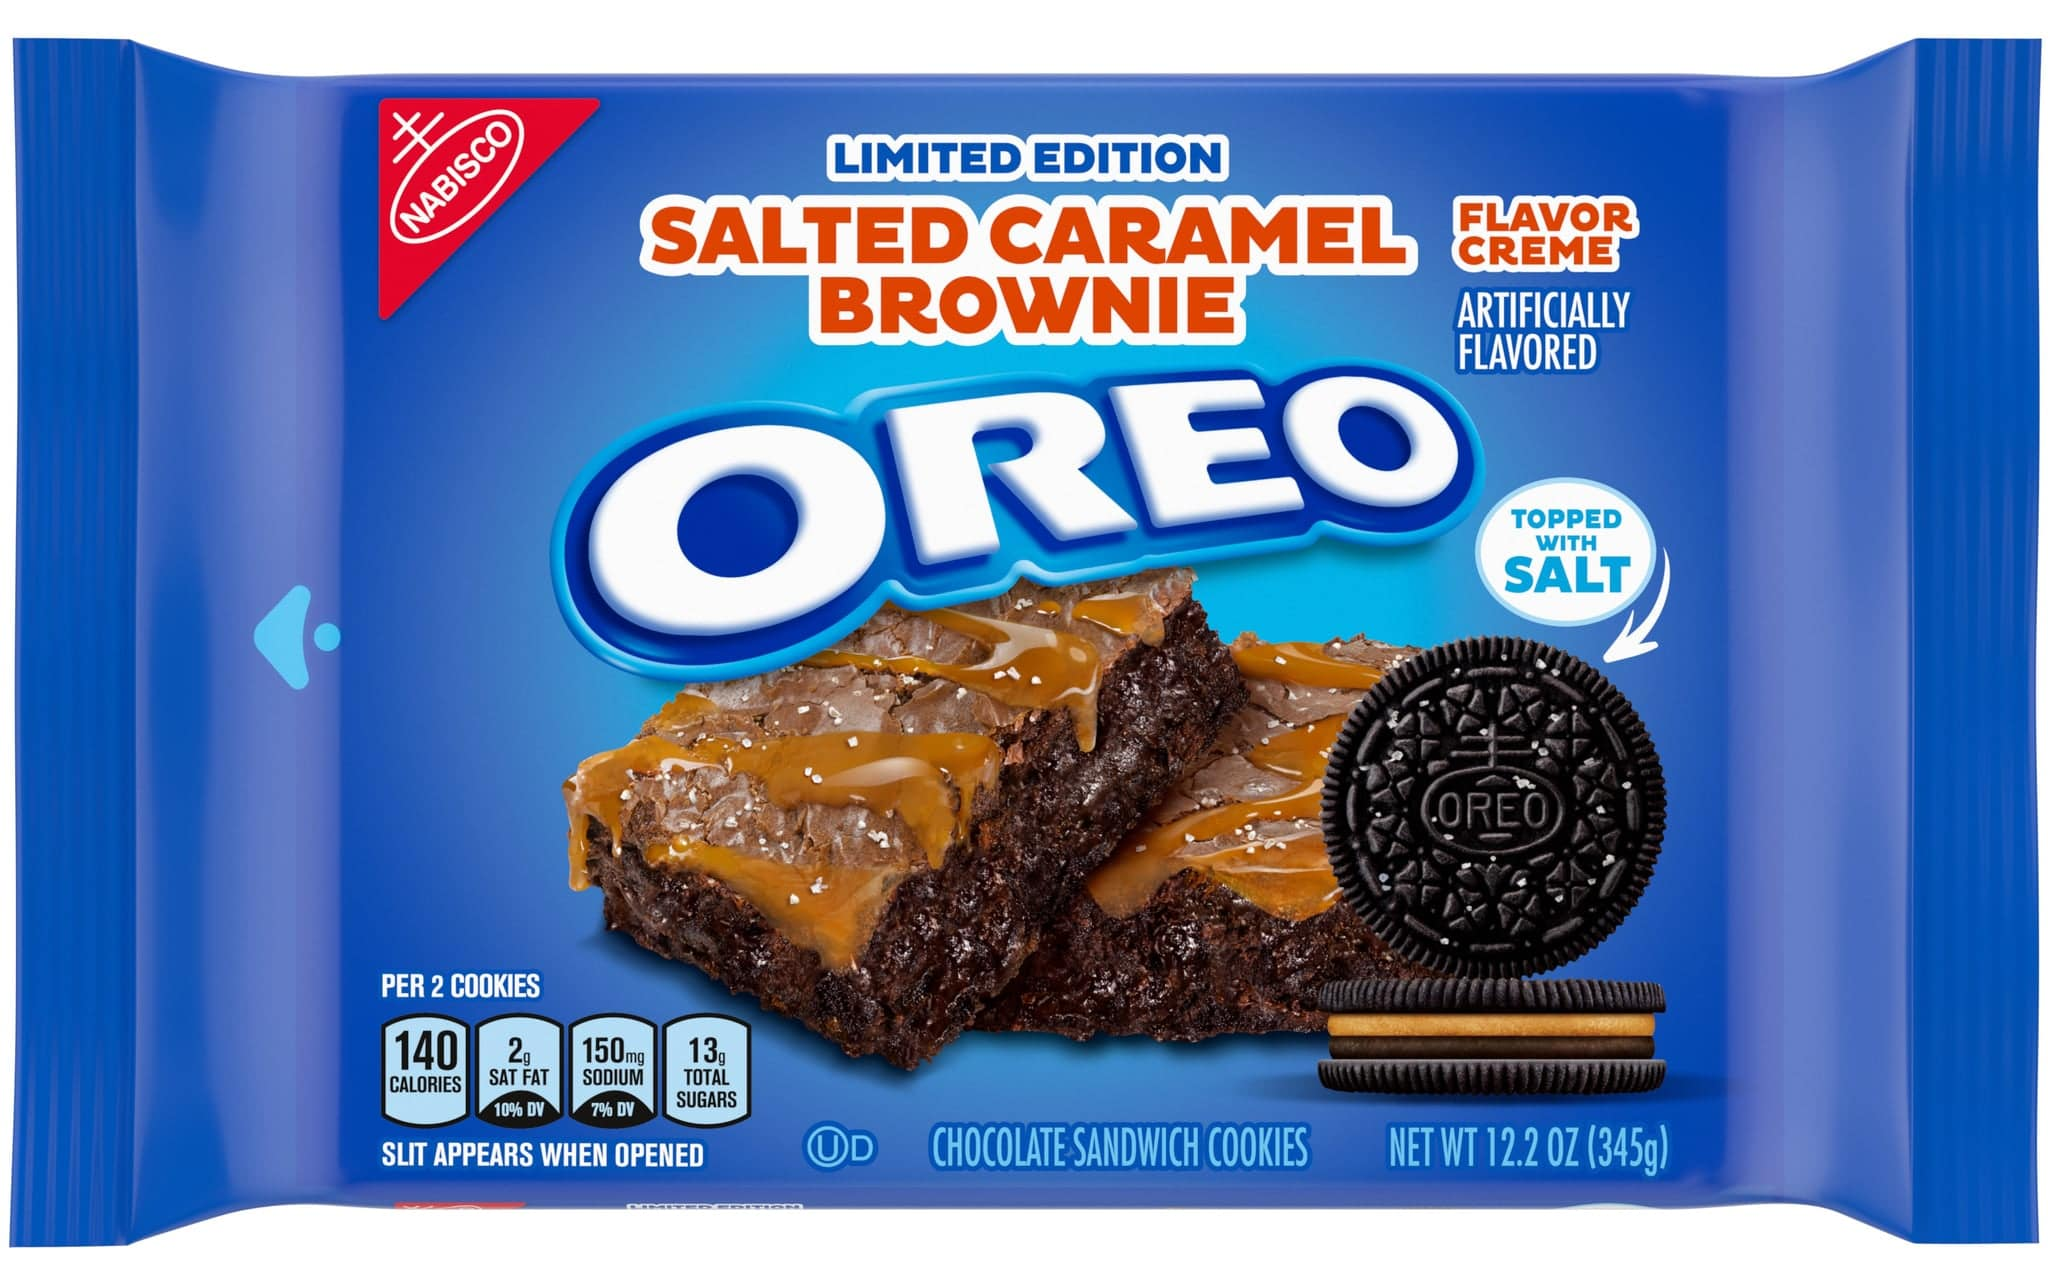 Oreo is releasing salted caramel brownie and apple cider donut flavors 17